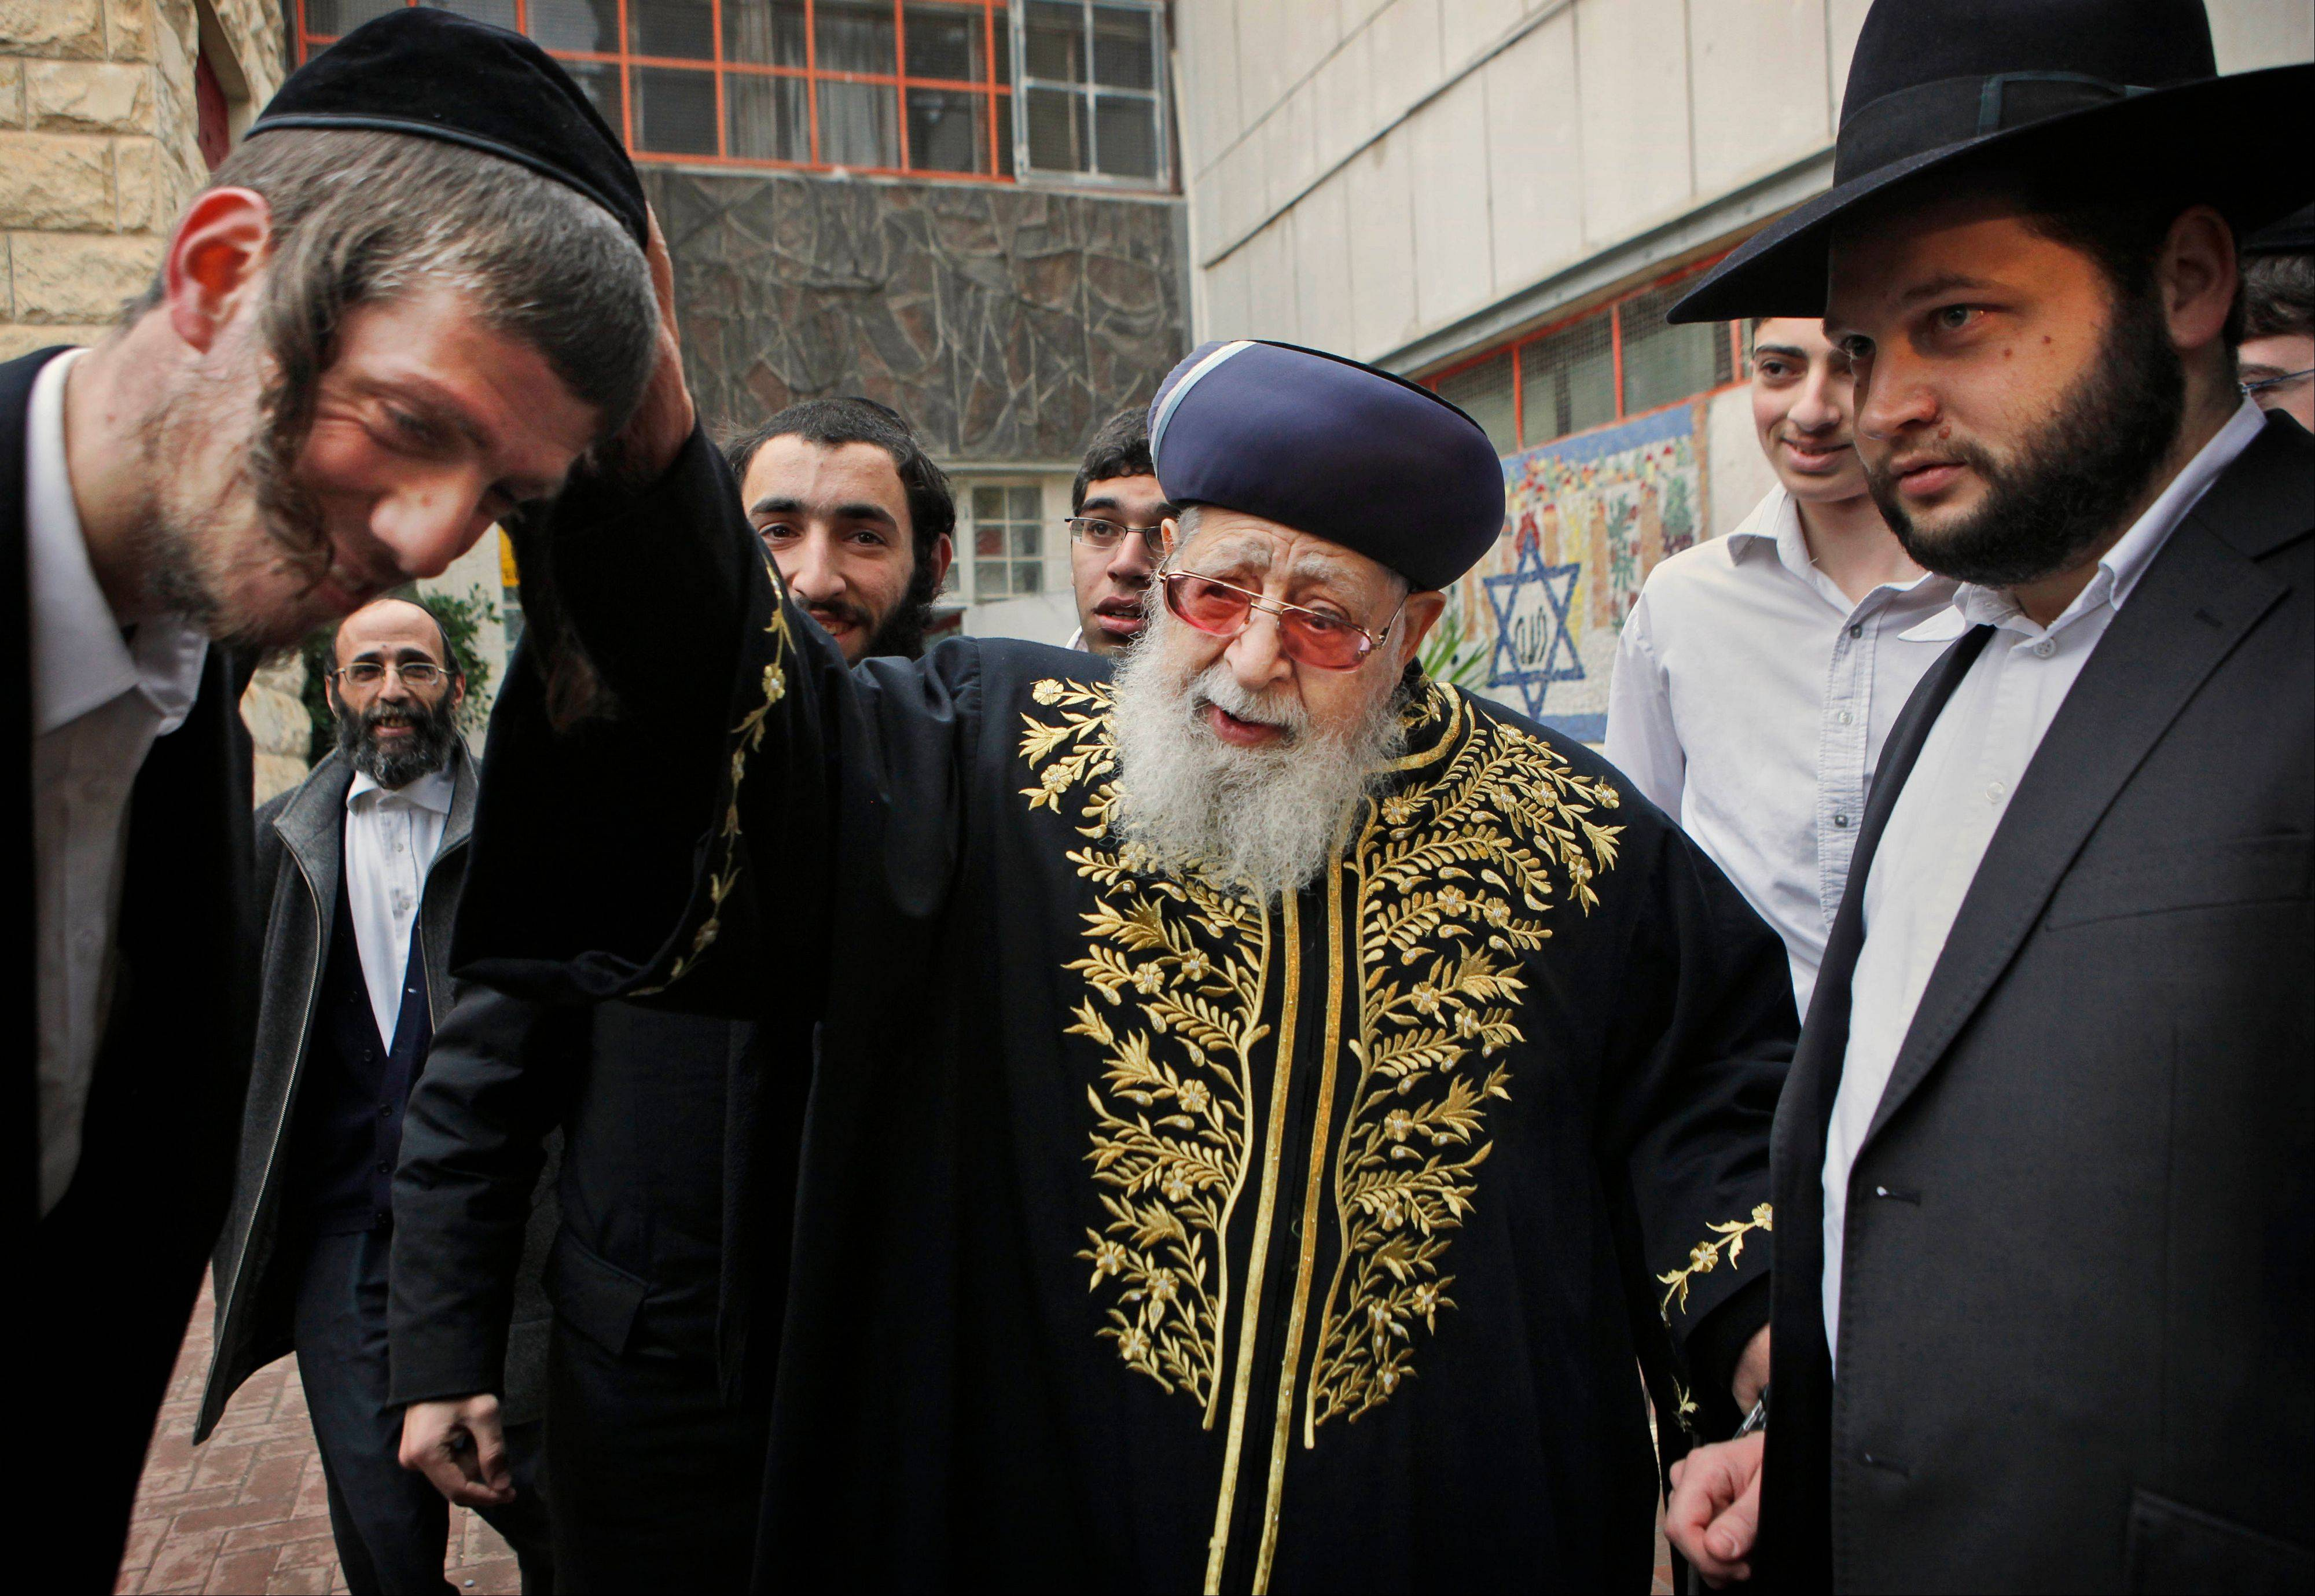 Associated Press/Feb. 10, 2009Rabbi Ovadia Yosef, center, Jewish spiritual leader of Israel's Shas party, blesses a man after casting his ballot at a polling station in Jerusalem.